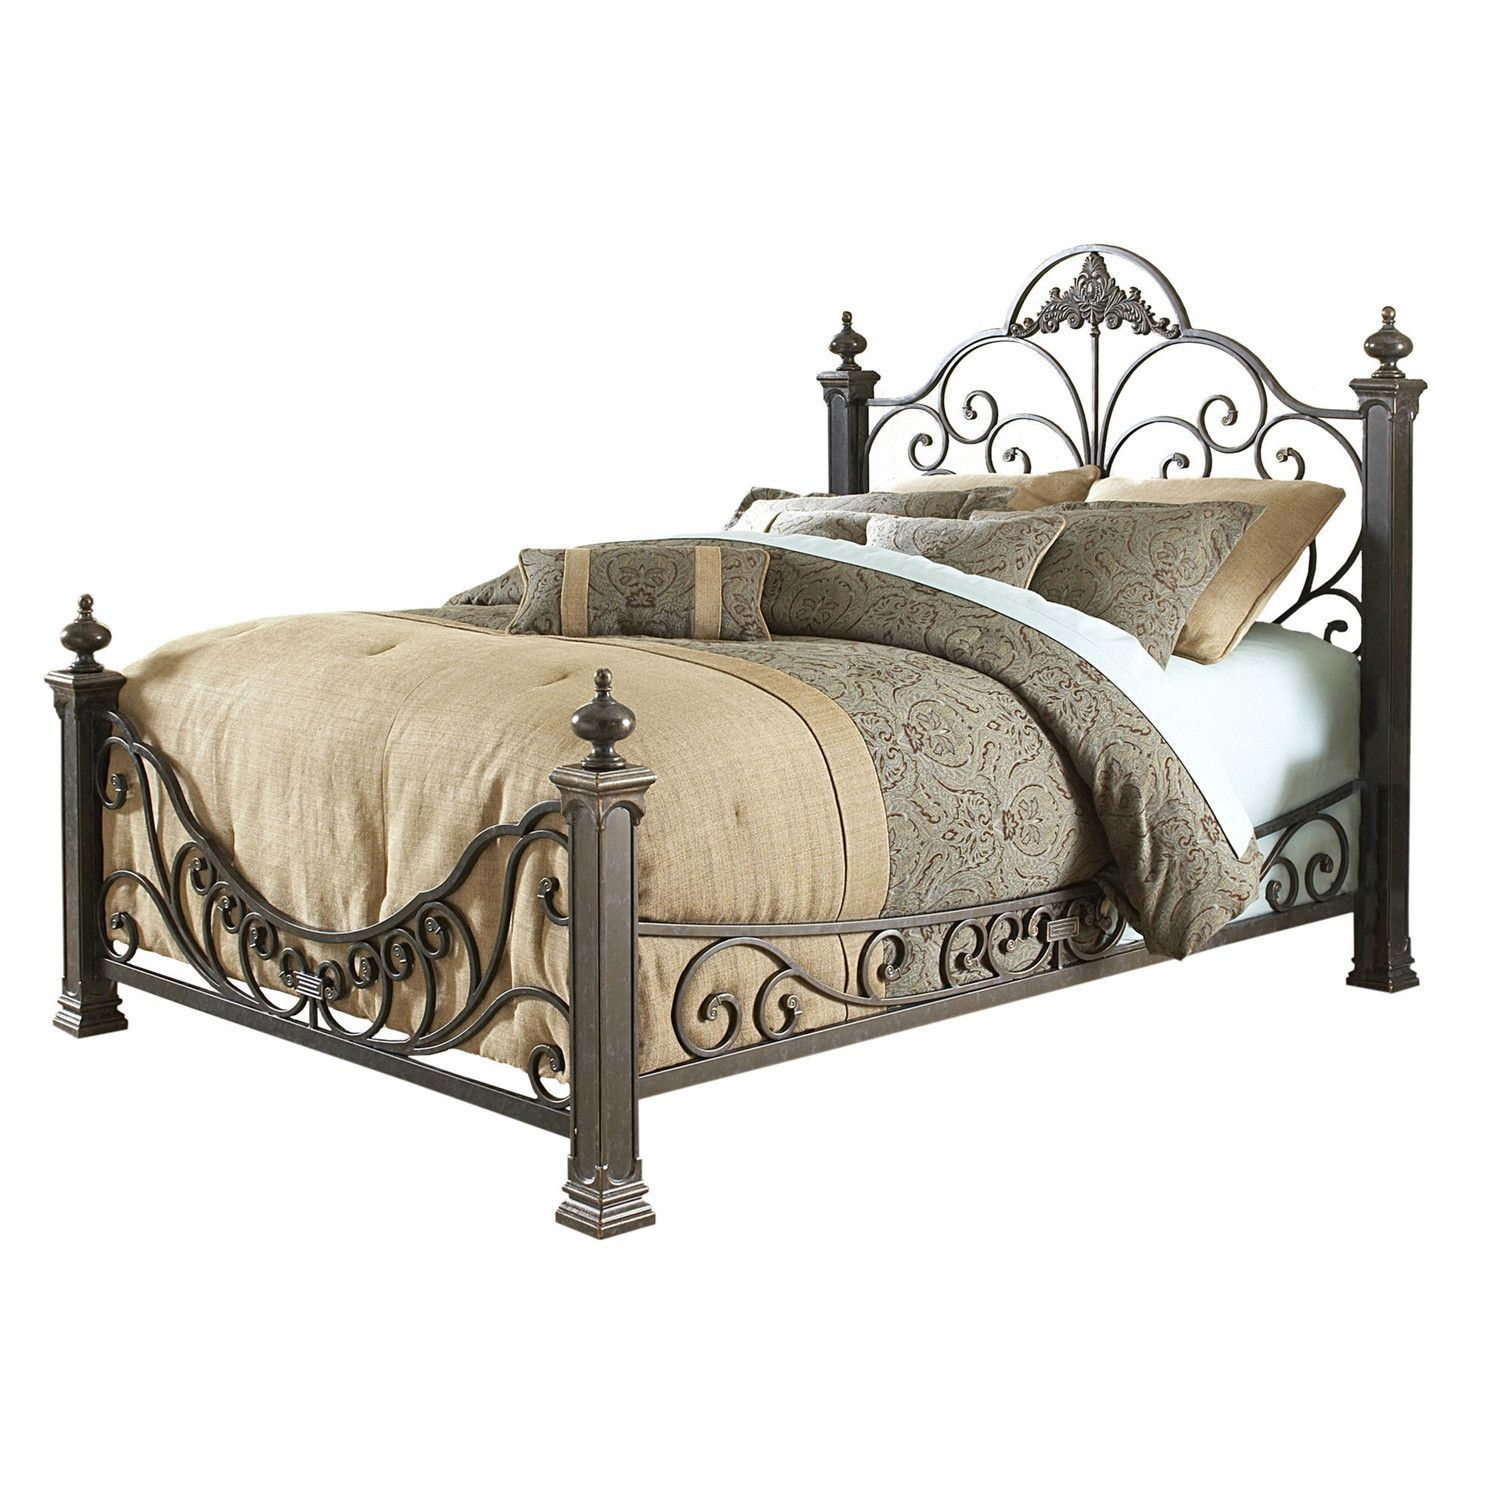 Queen Size Baroque Style Metal Bed with Headboard